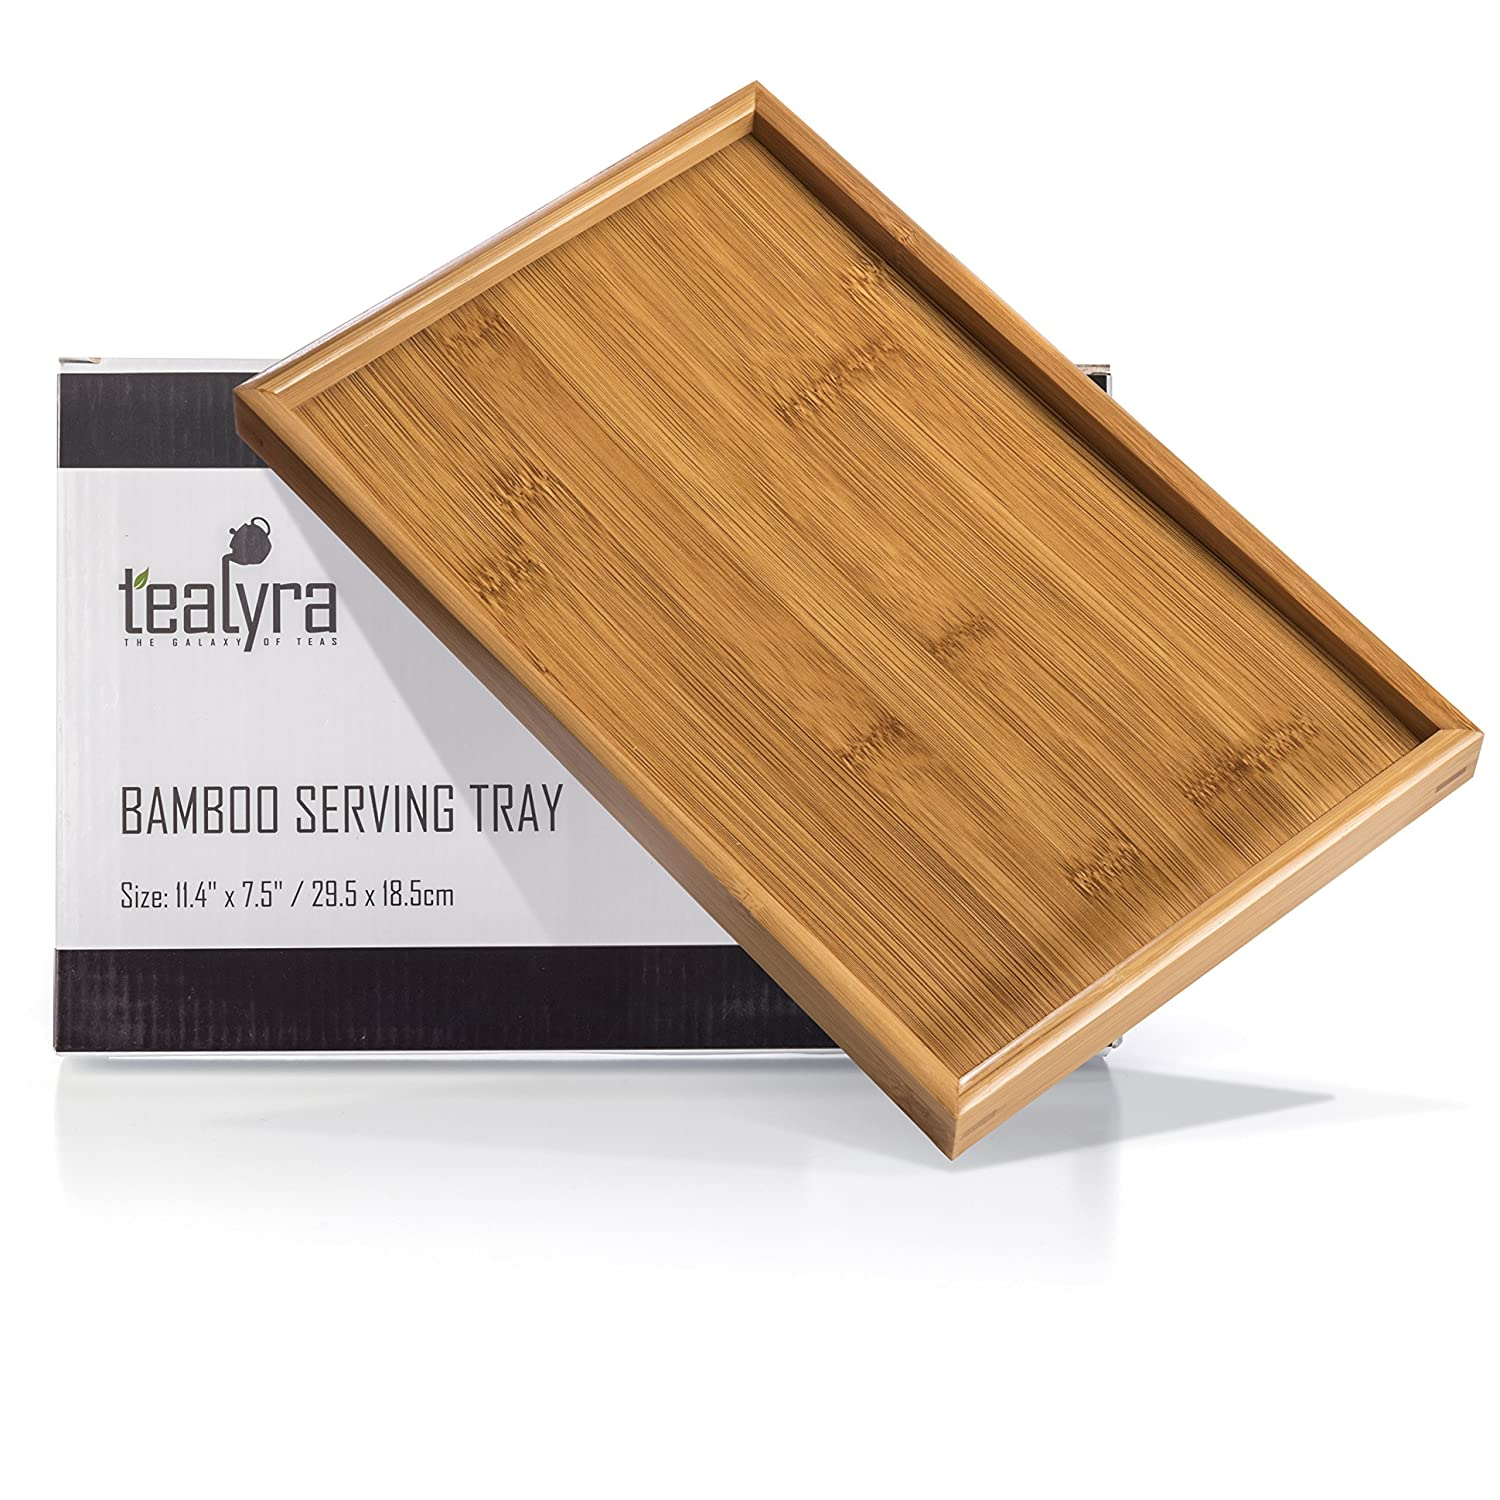 Bamboo Gongfu Tea Serving Tray Tabletop - For The Perfect Tea Serving - 29.5x19.5cm / 11.6